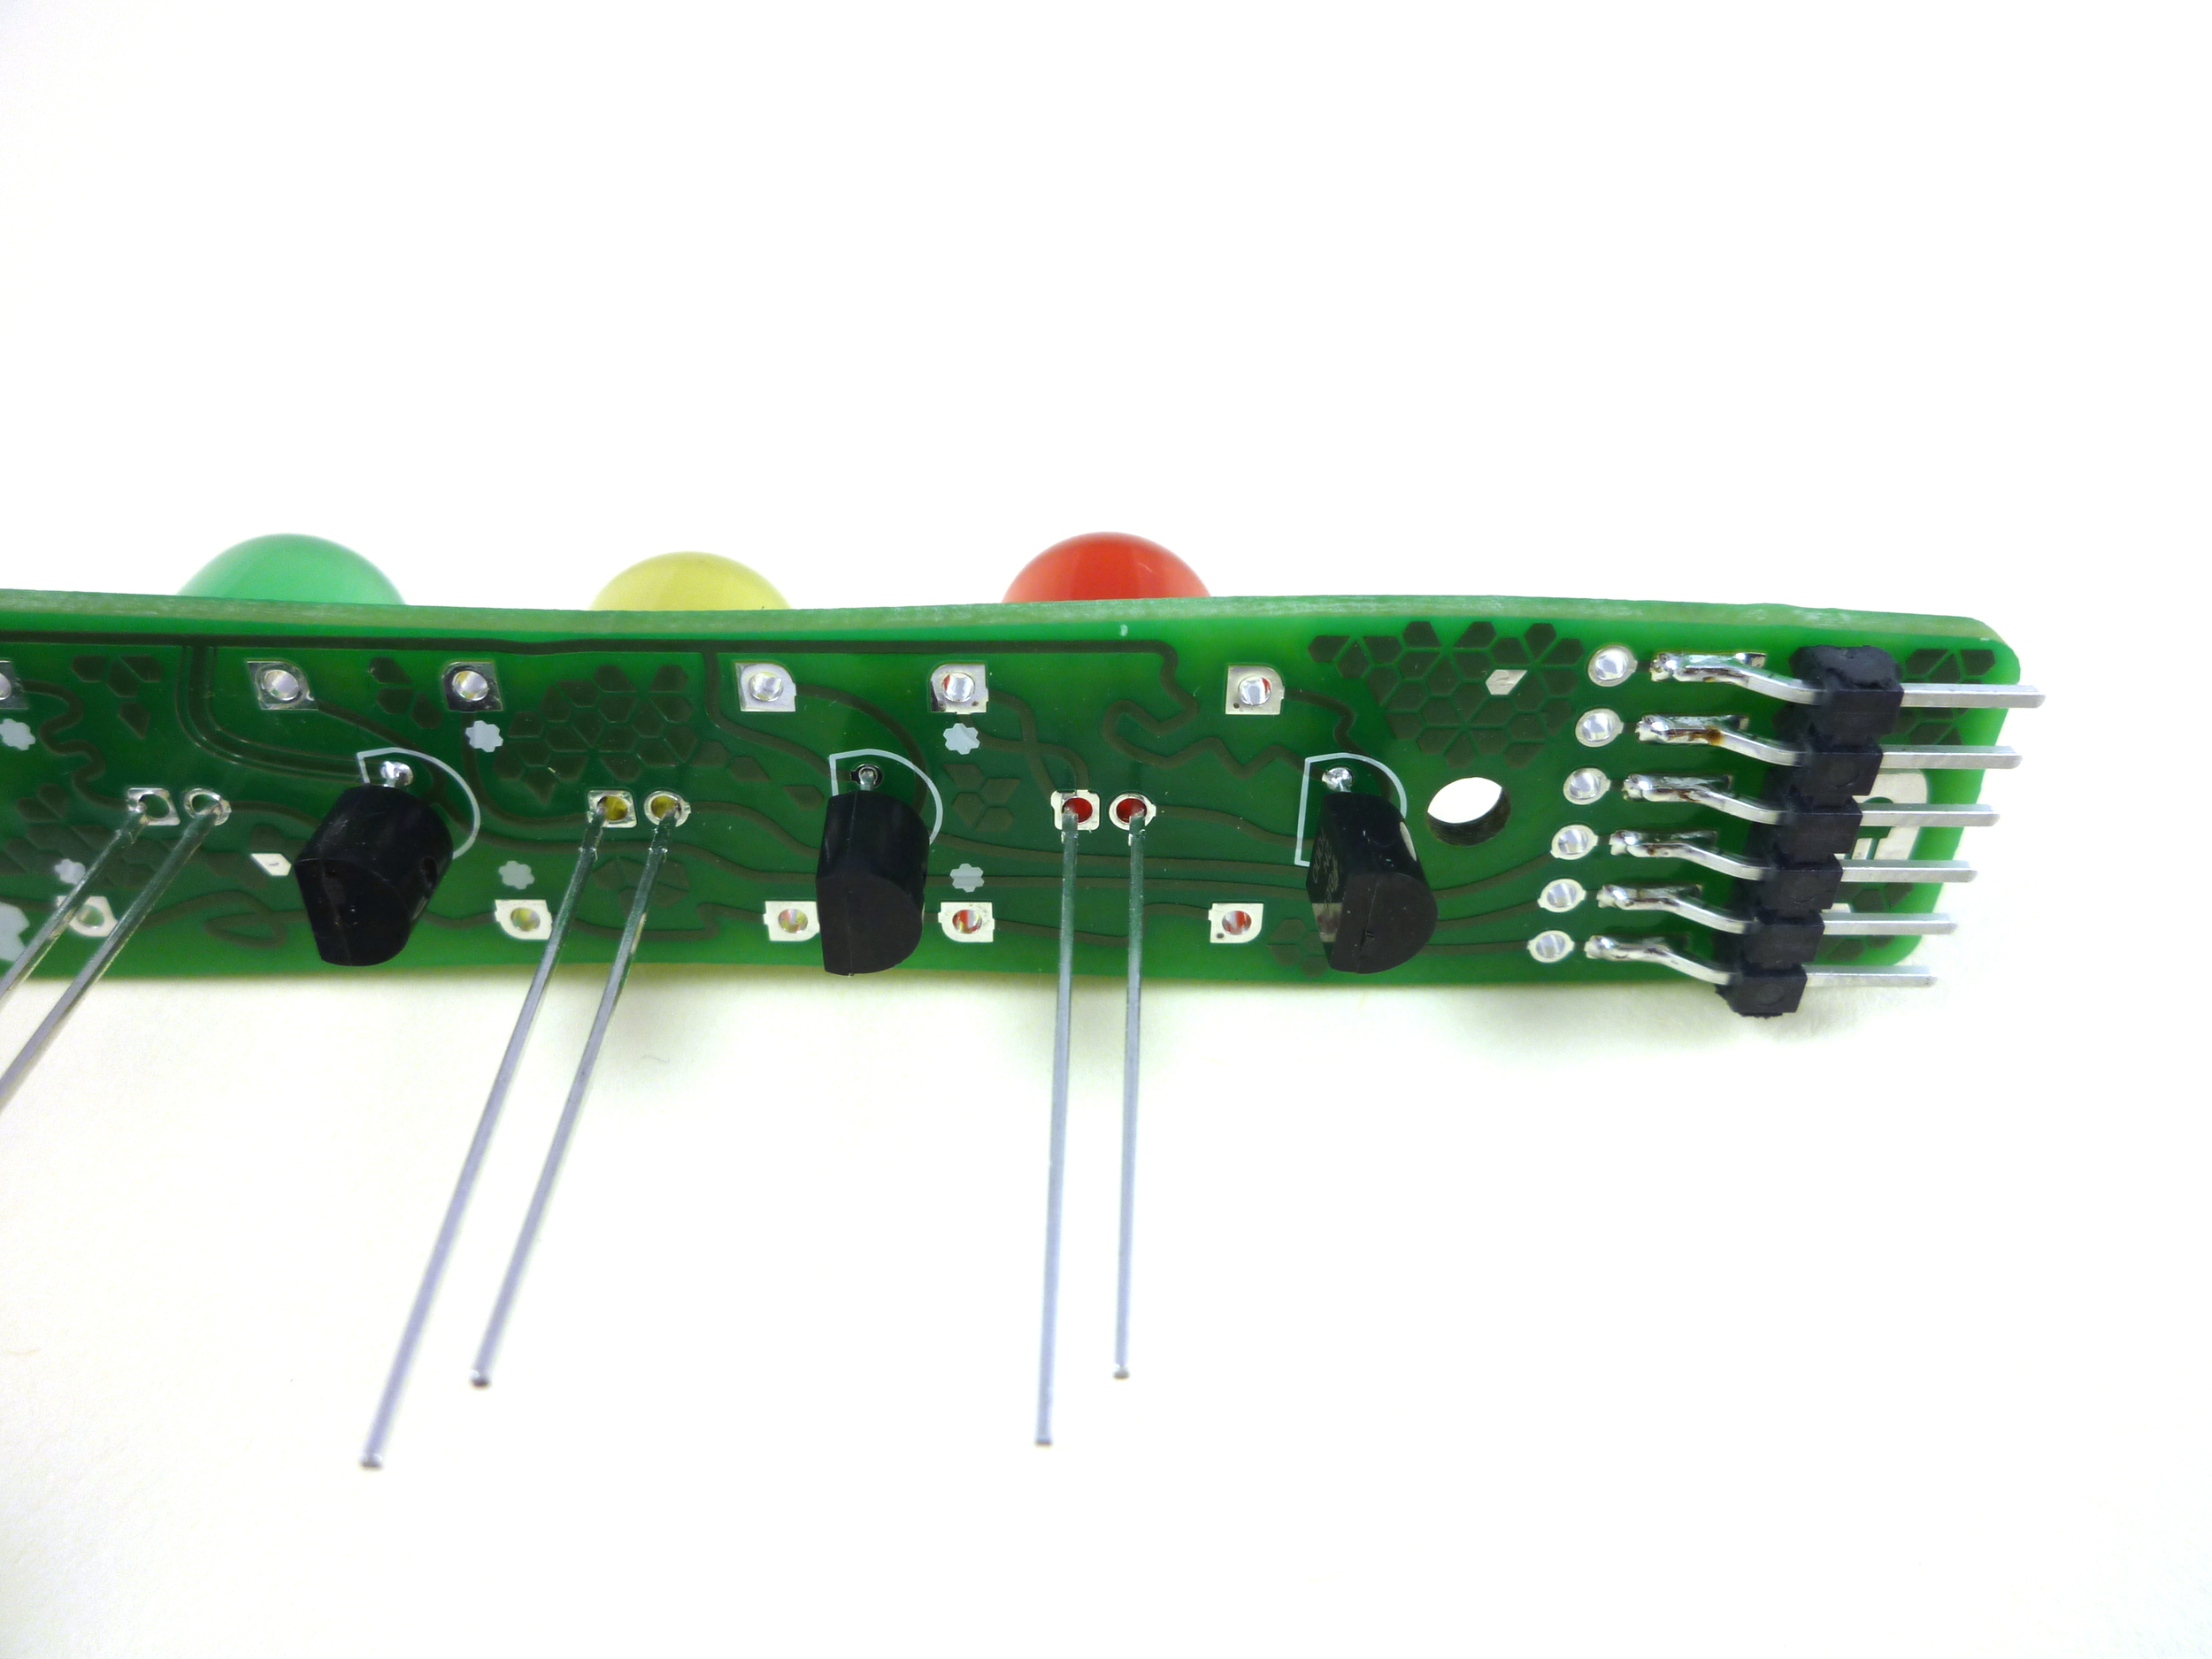 Insert the LEDs to their sockets. It doesn't matter which LED colour goes where,  but the long leg of the LED must go into the square hole ! Make sure that the LED's base sits right against the board and solder all of them into place. Clip the leads.